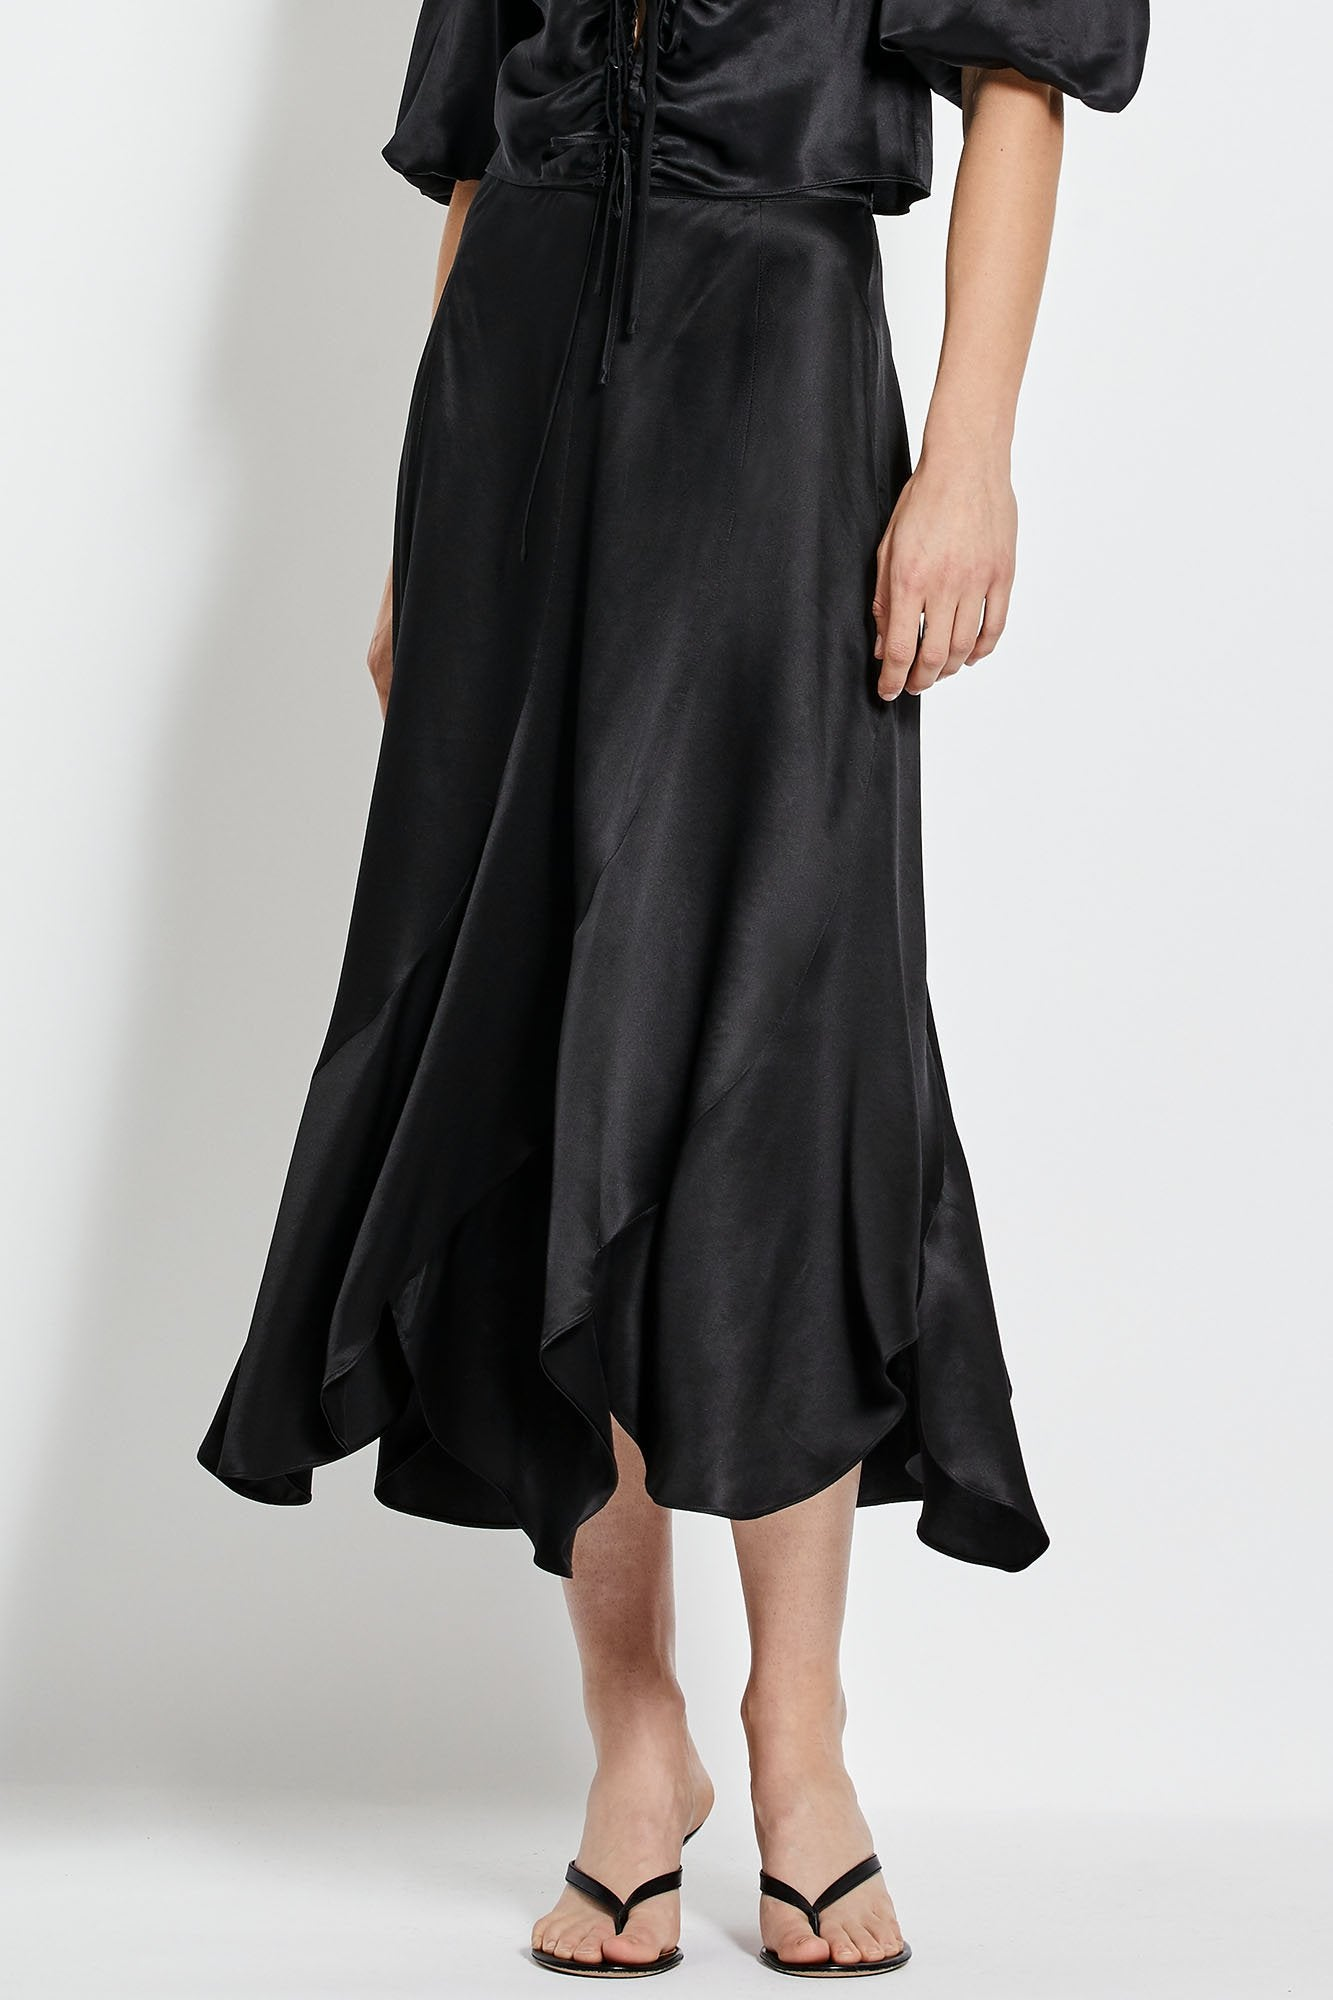 Debbie Skirt - Black